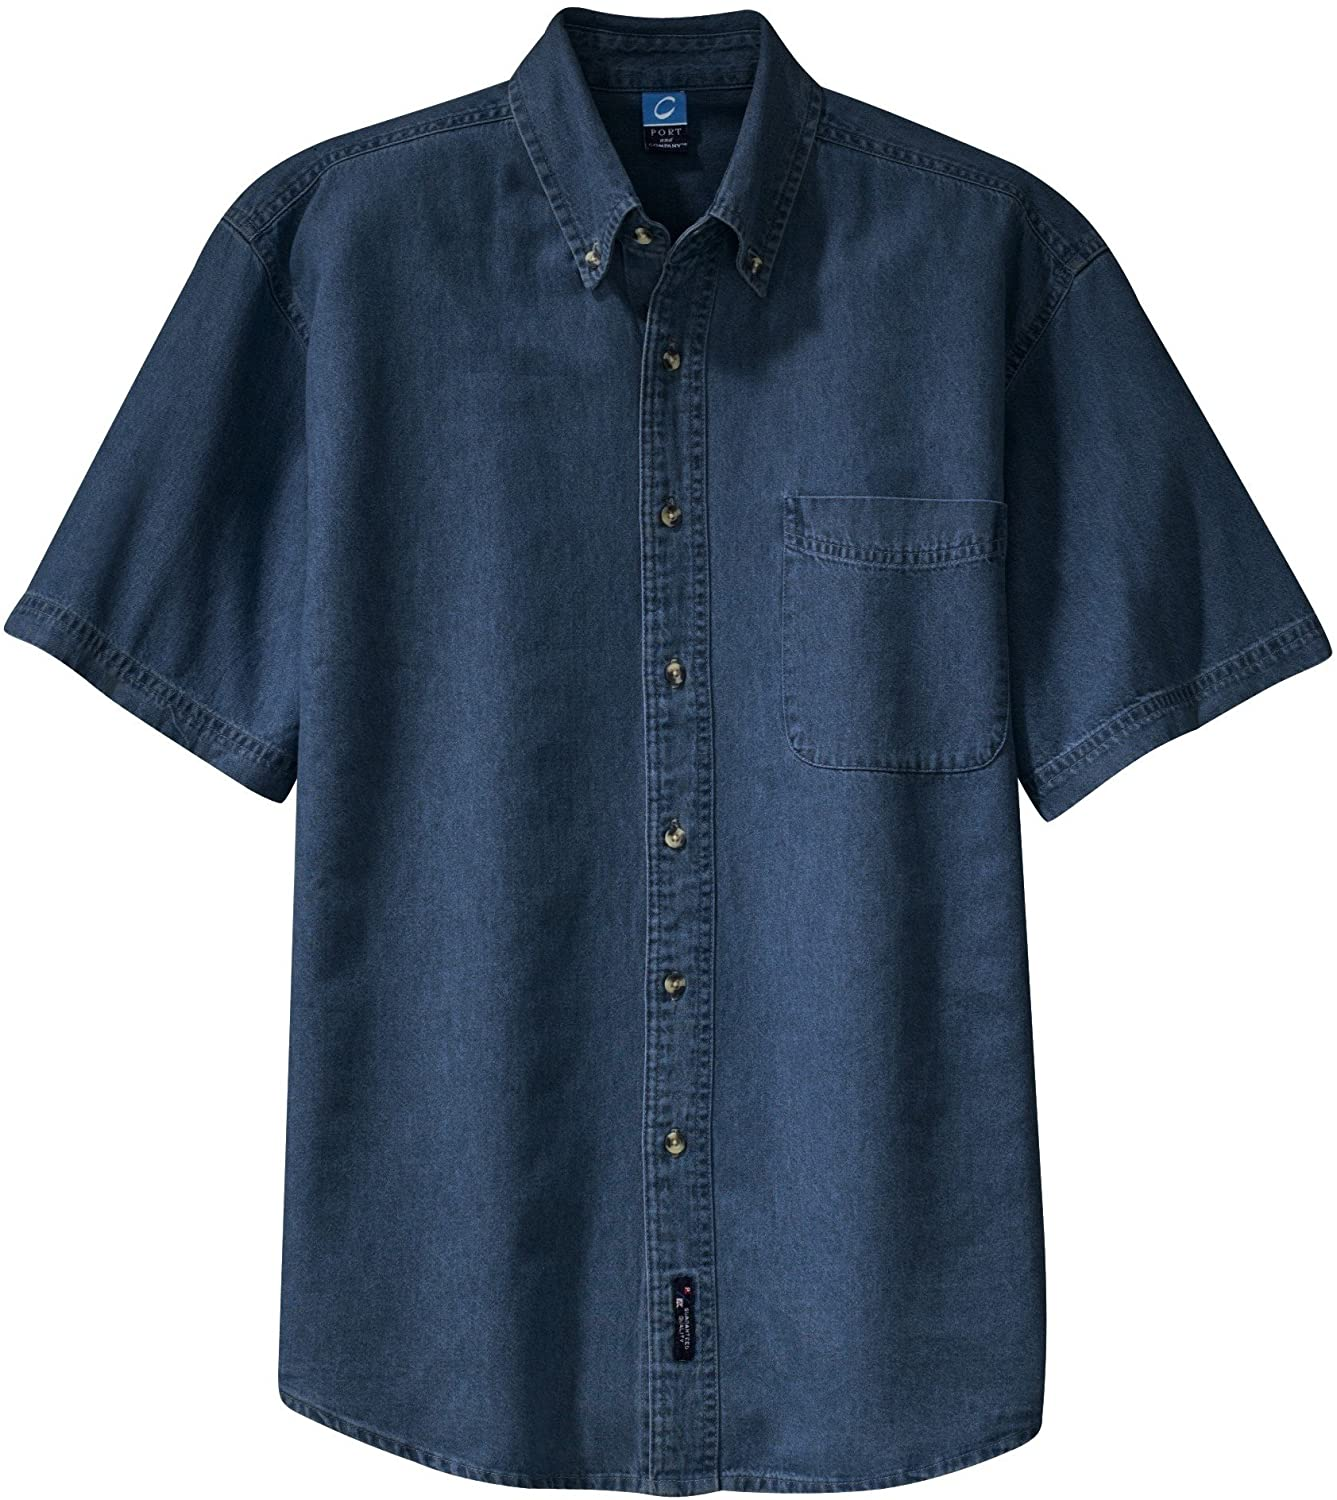 Port /& Company Mens Short Sleeve Value Denim Shirt